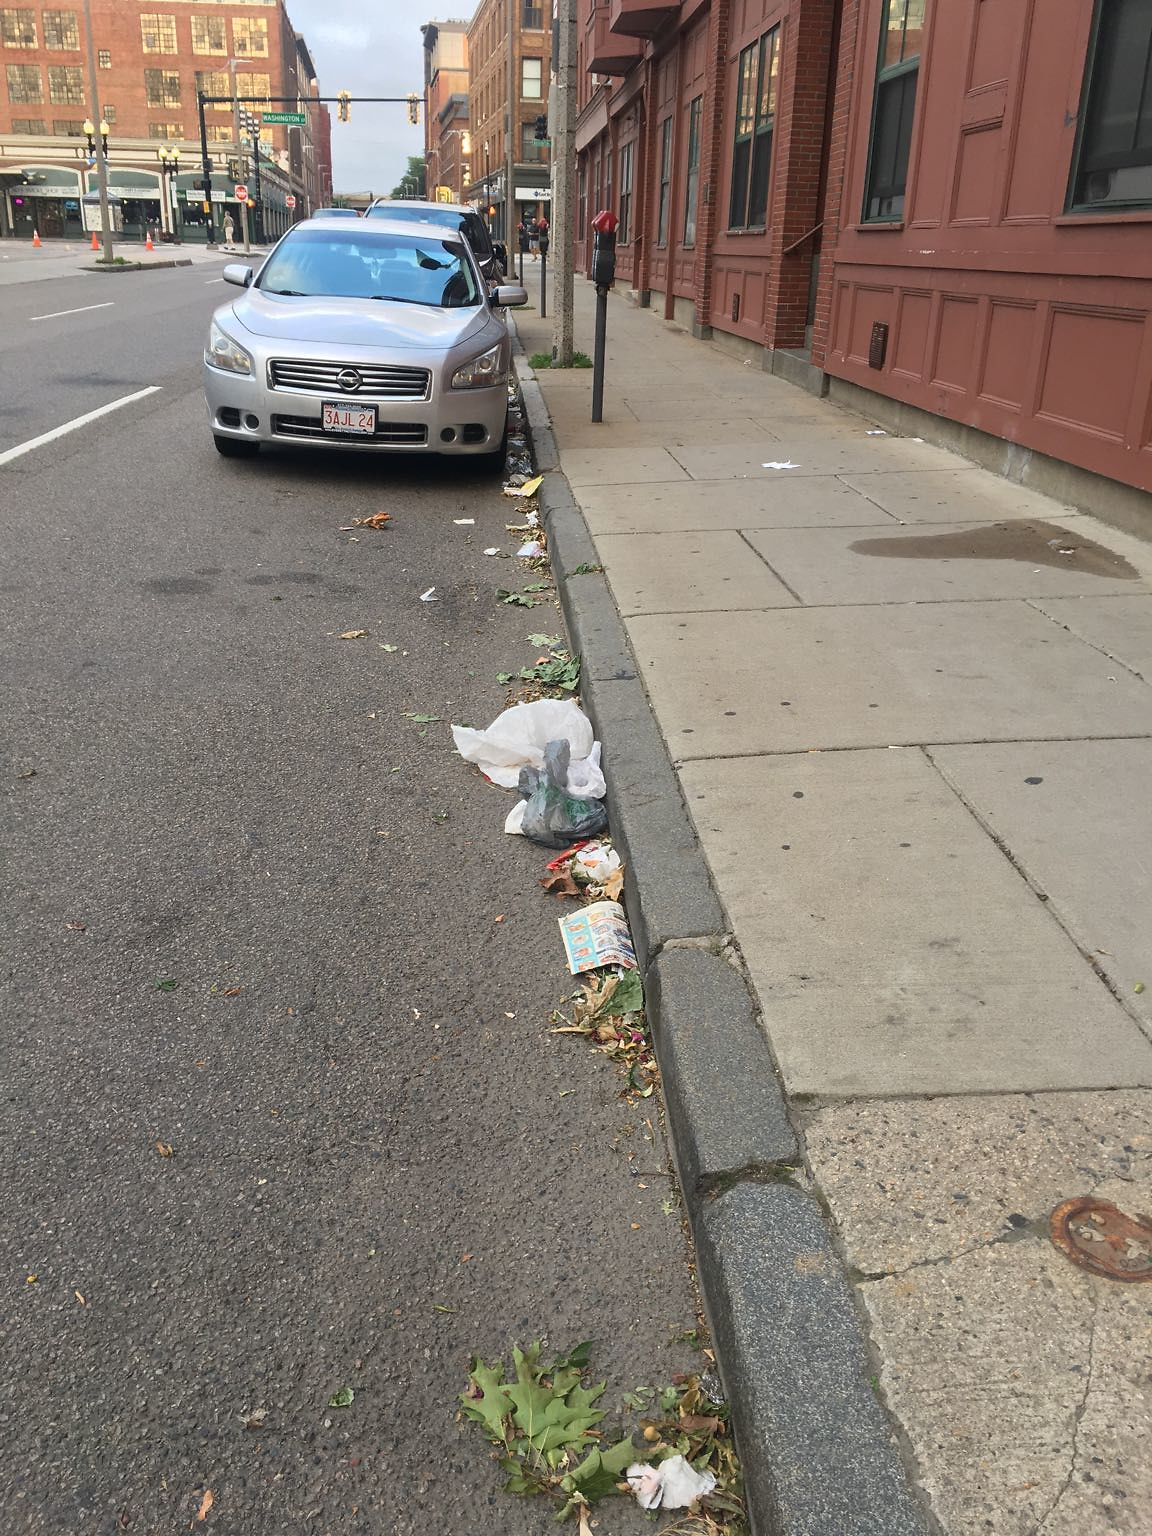 Trash/Litter all over the street on East Berkeley between shawmut and Washington